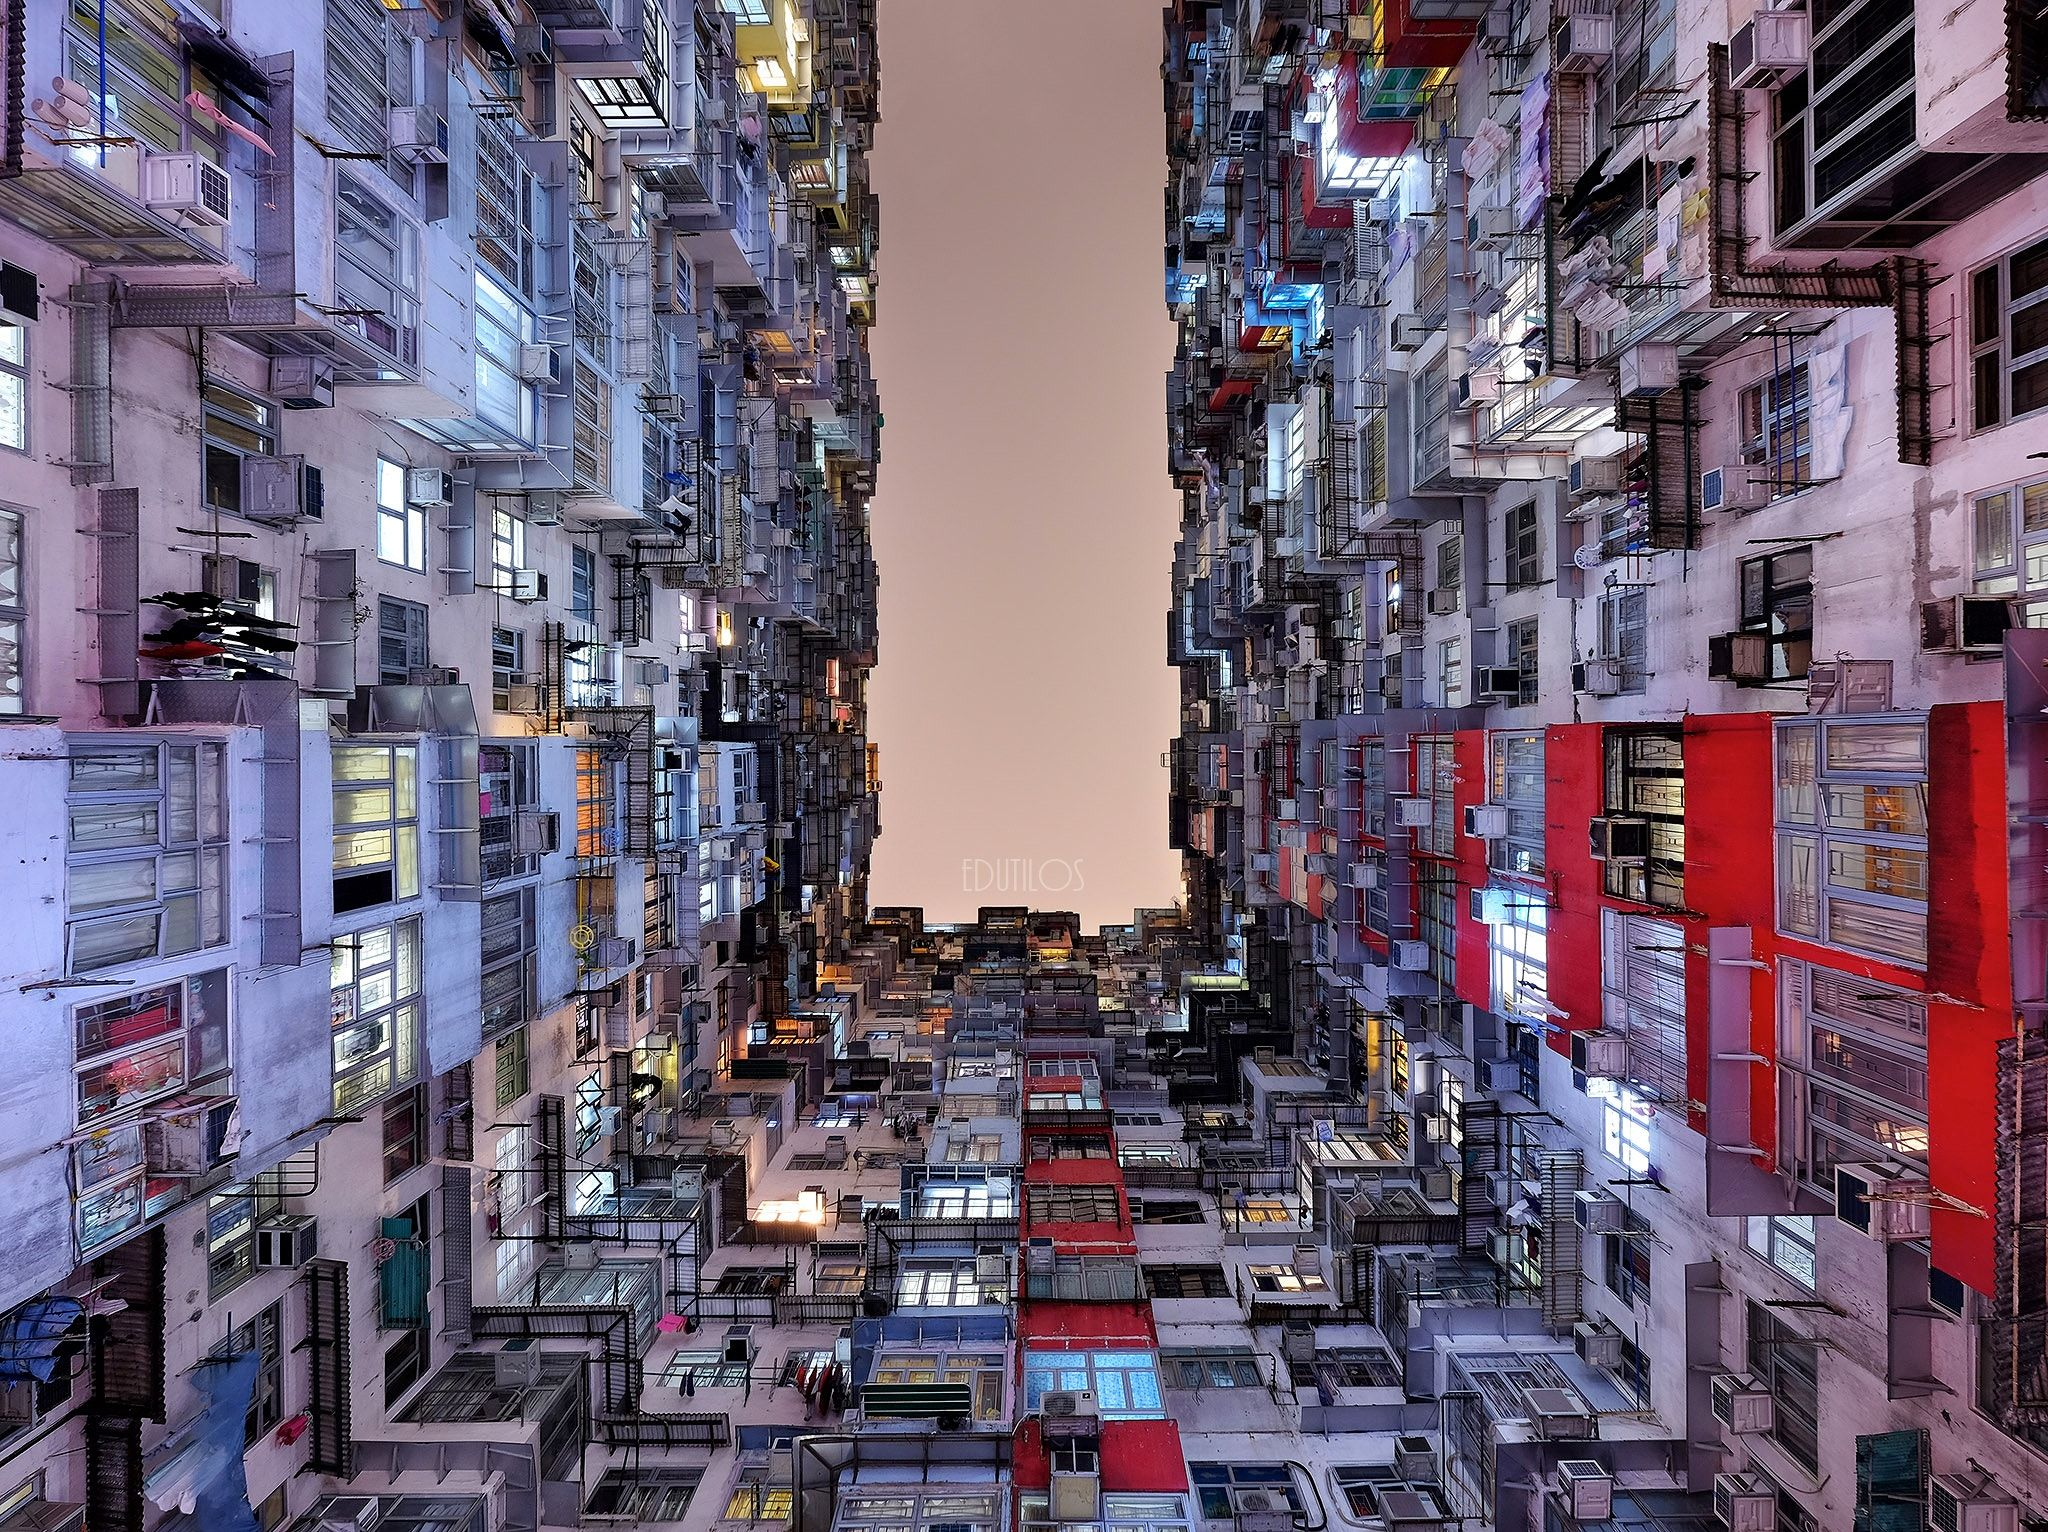 A Thousand Homes Yick Cheong Building Quarry Bay Hong Kong - Photographer captures madness real estate hong kong